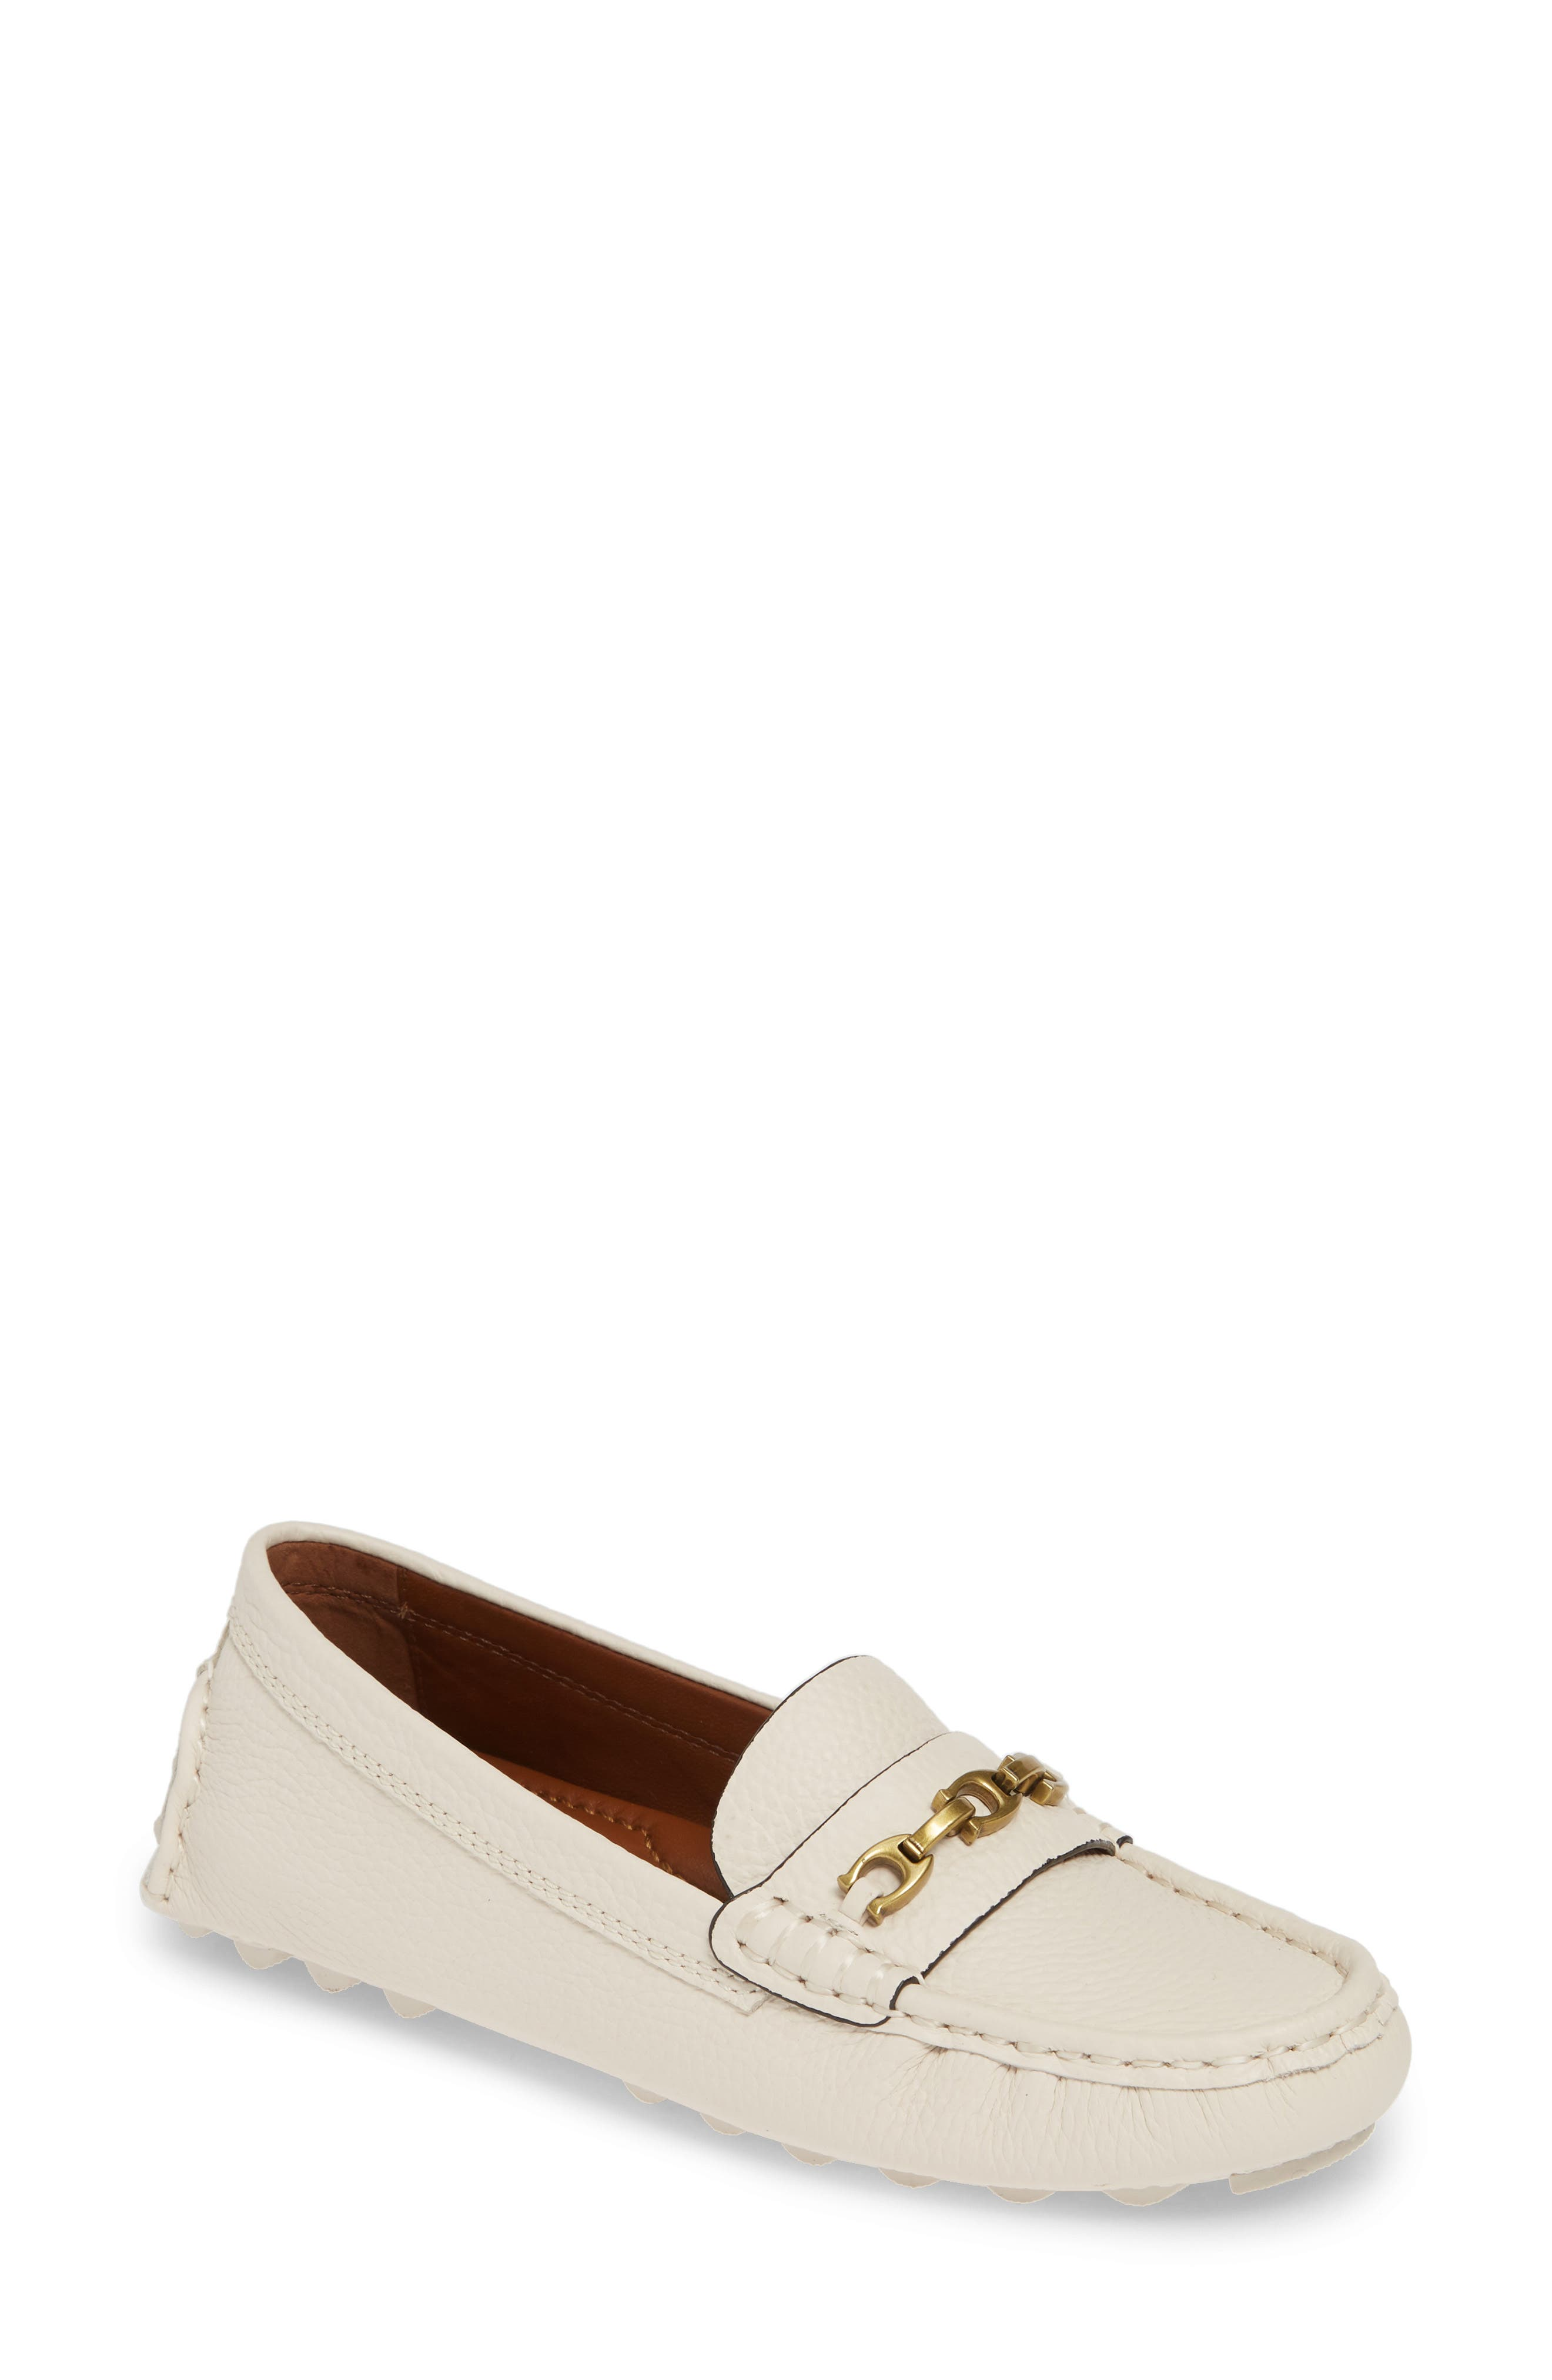 COACH Crosby Driver Loafer, Main, color, CHALK LEATHER